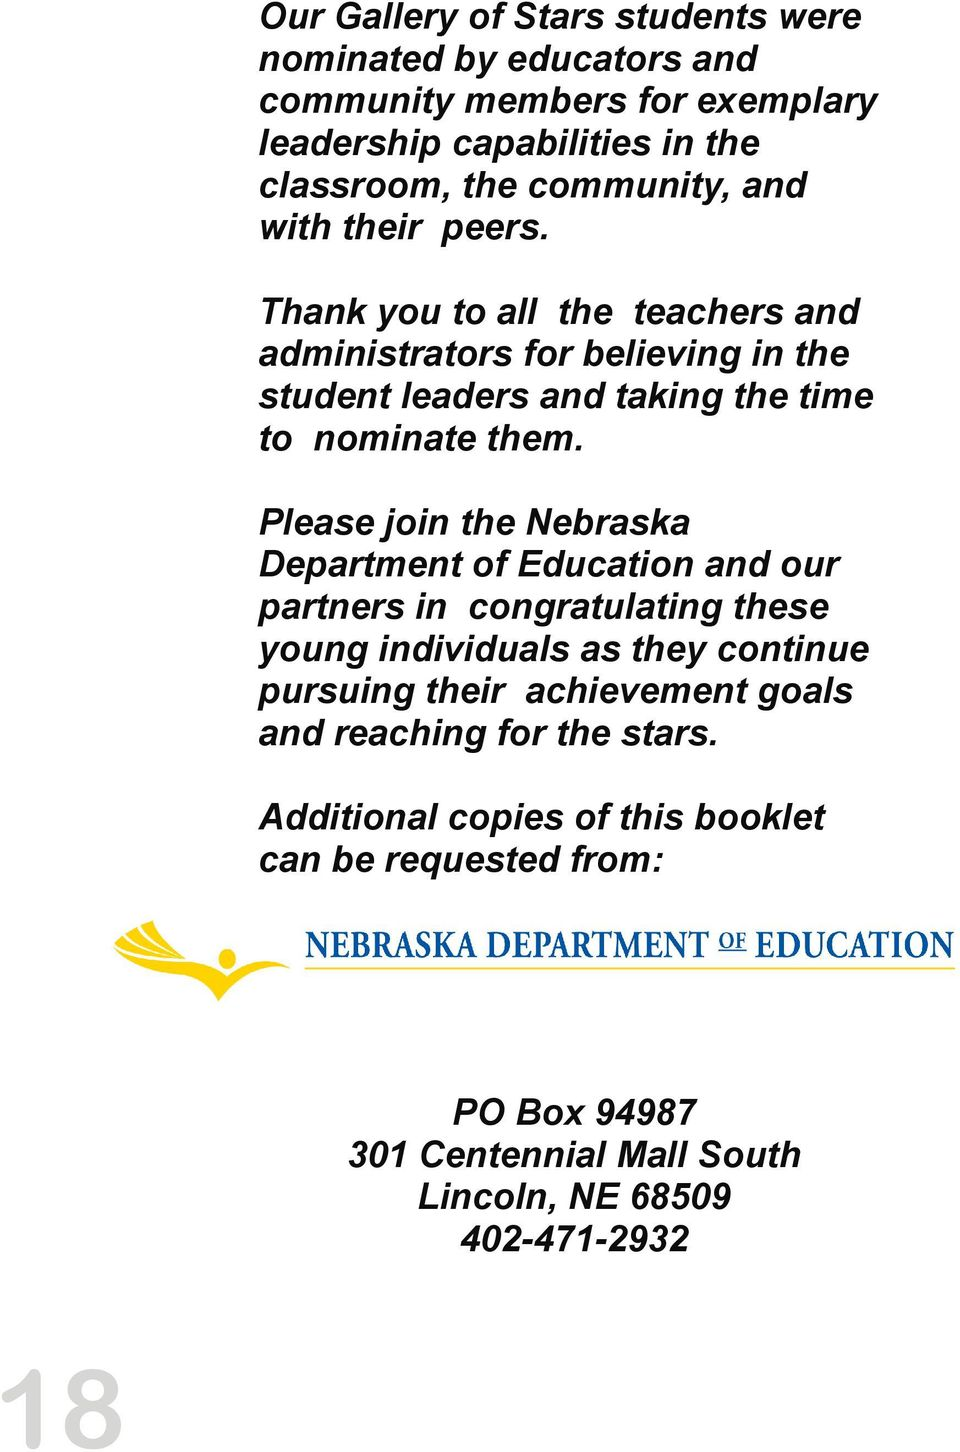 Please join the Nebraska Department of Education and our partners in congratulating these young individuals as they continue pursuing their achievement